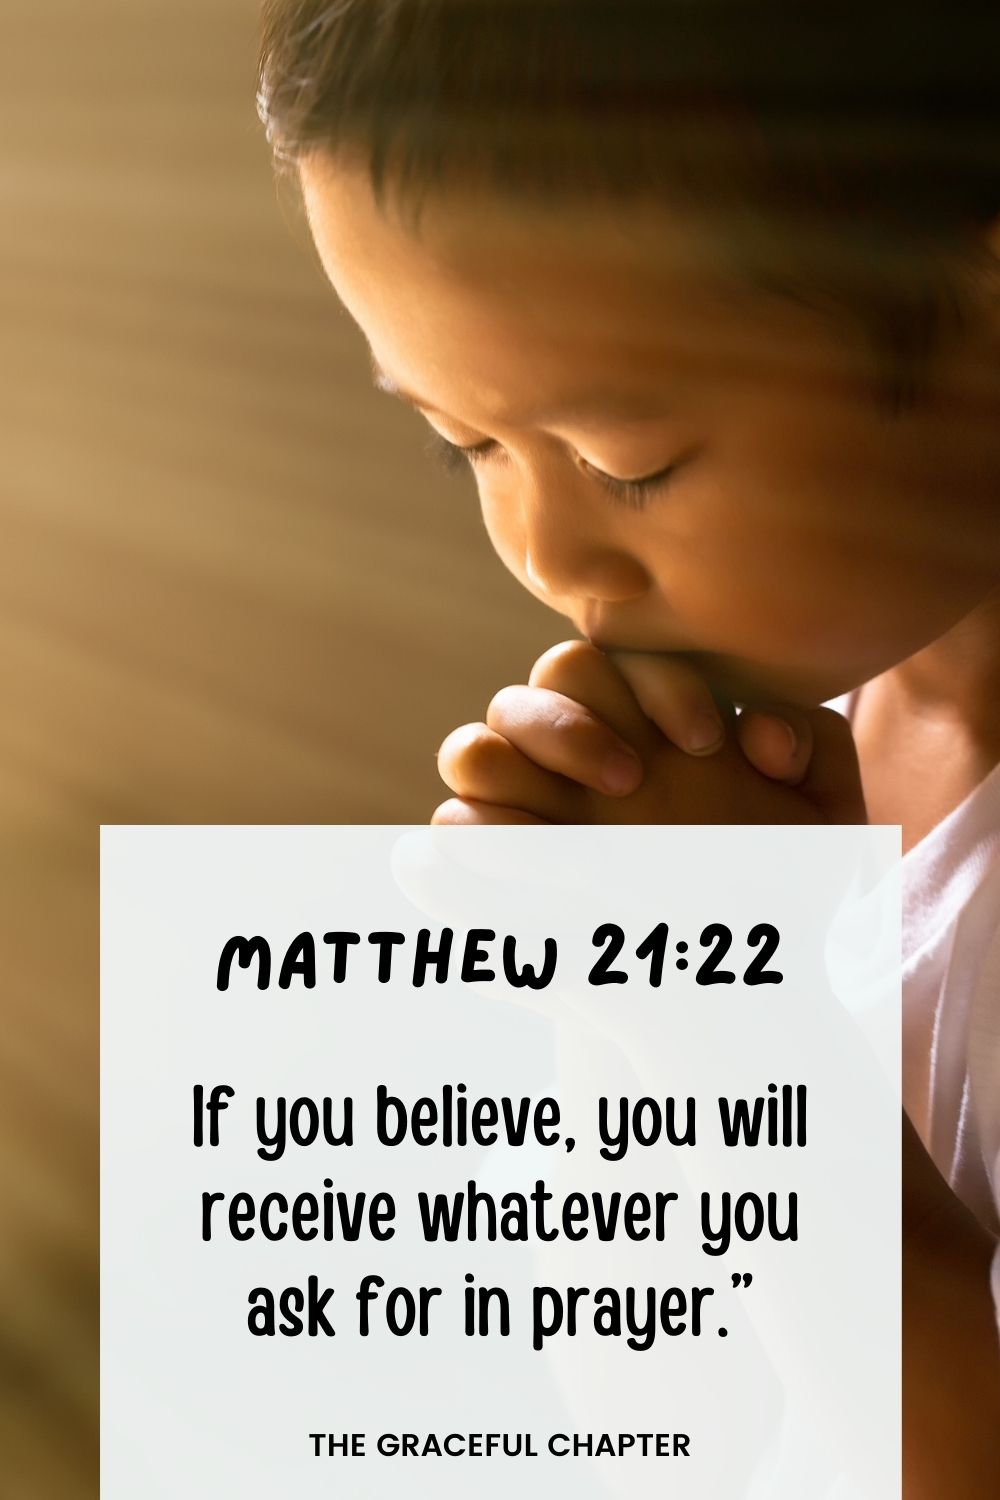 If you believe, you will receive whatever you ask for in prayer. Matthew 21:22